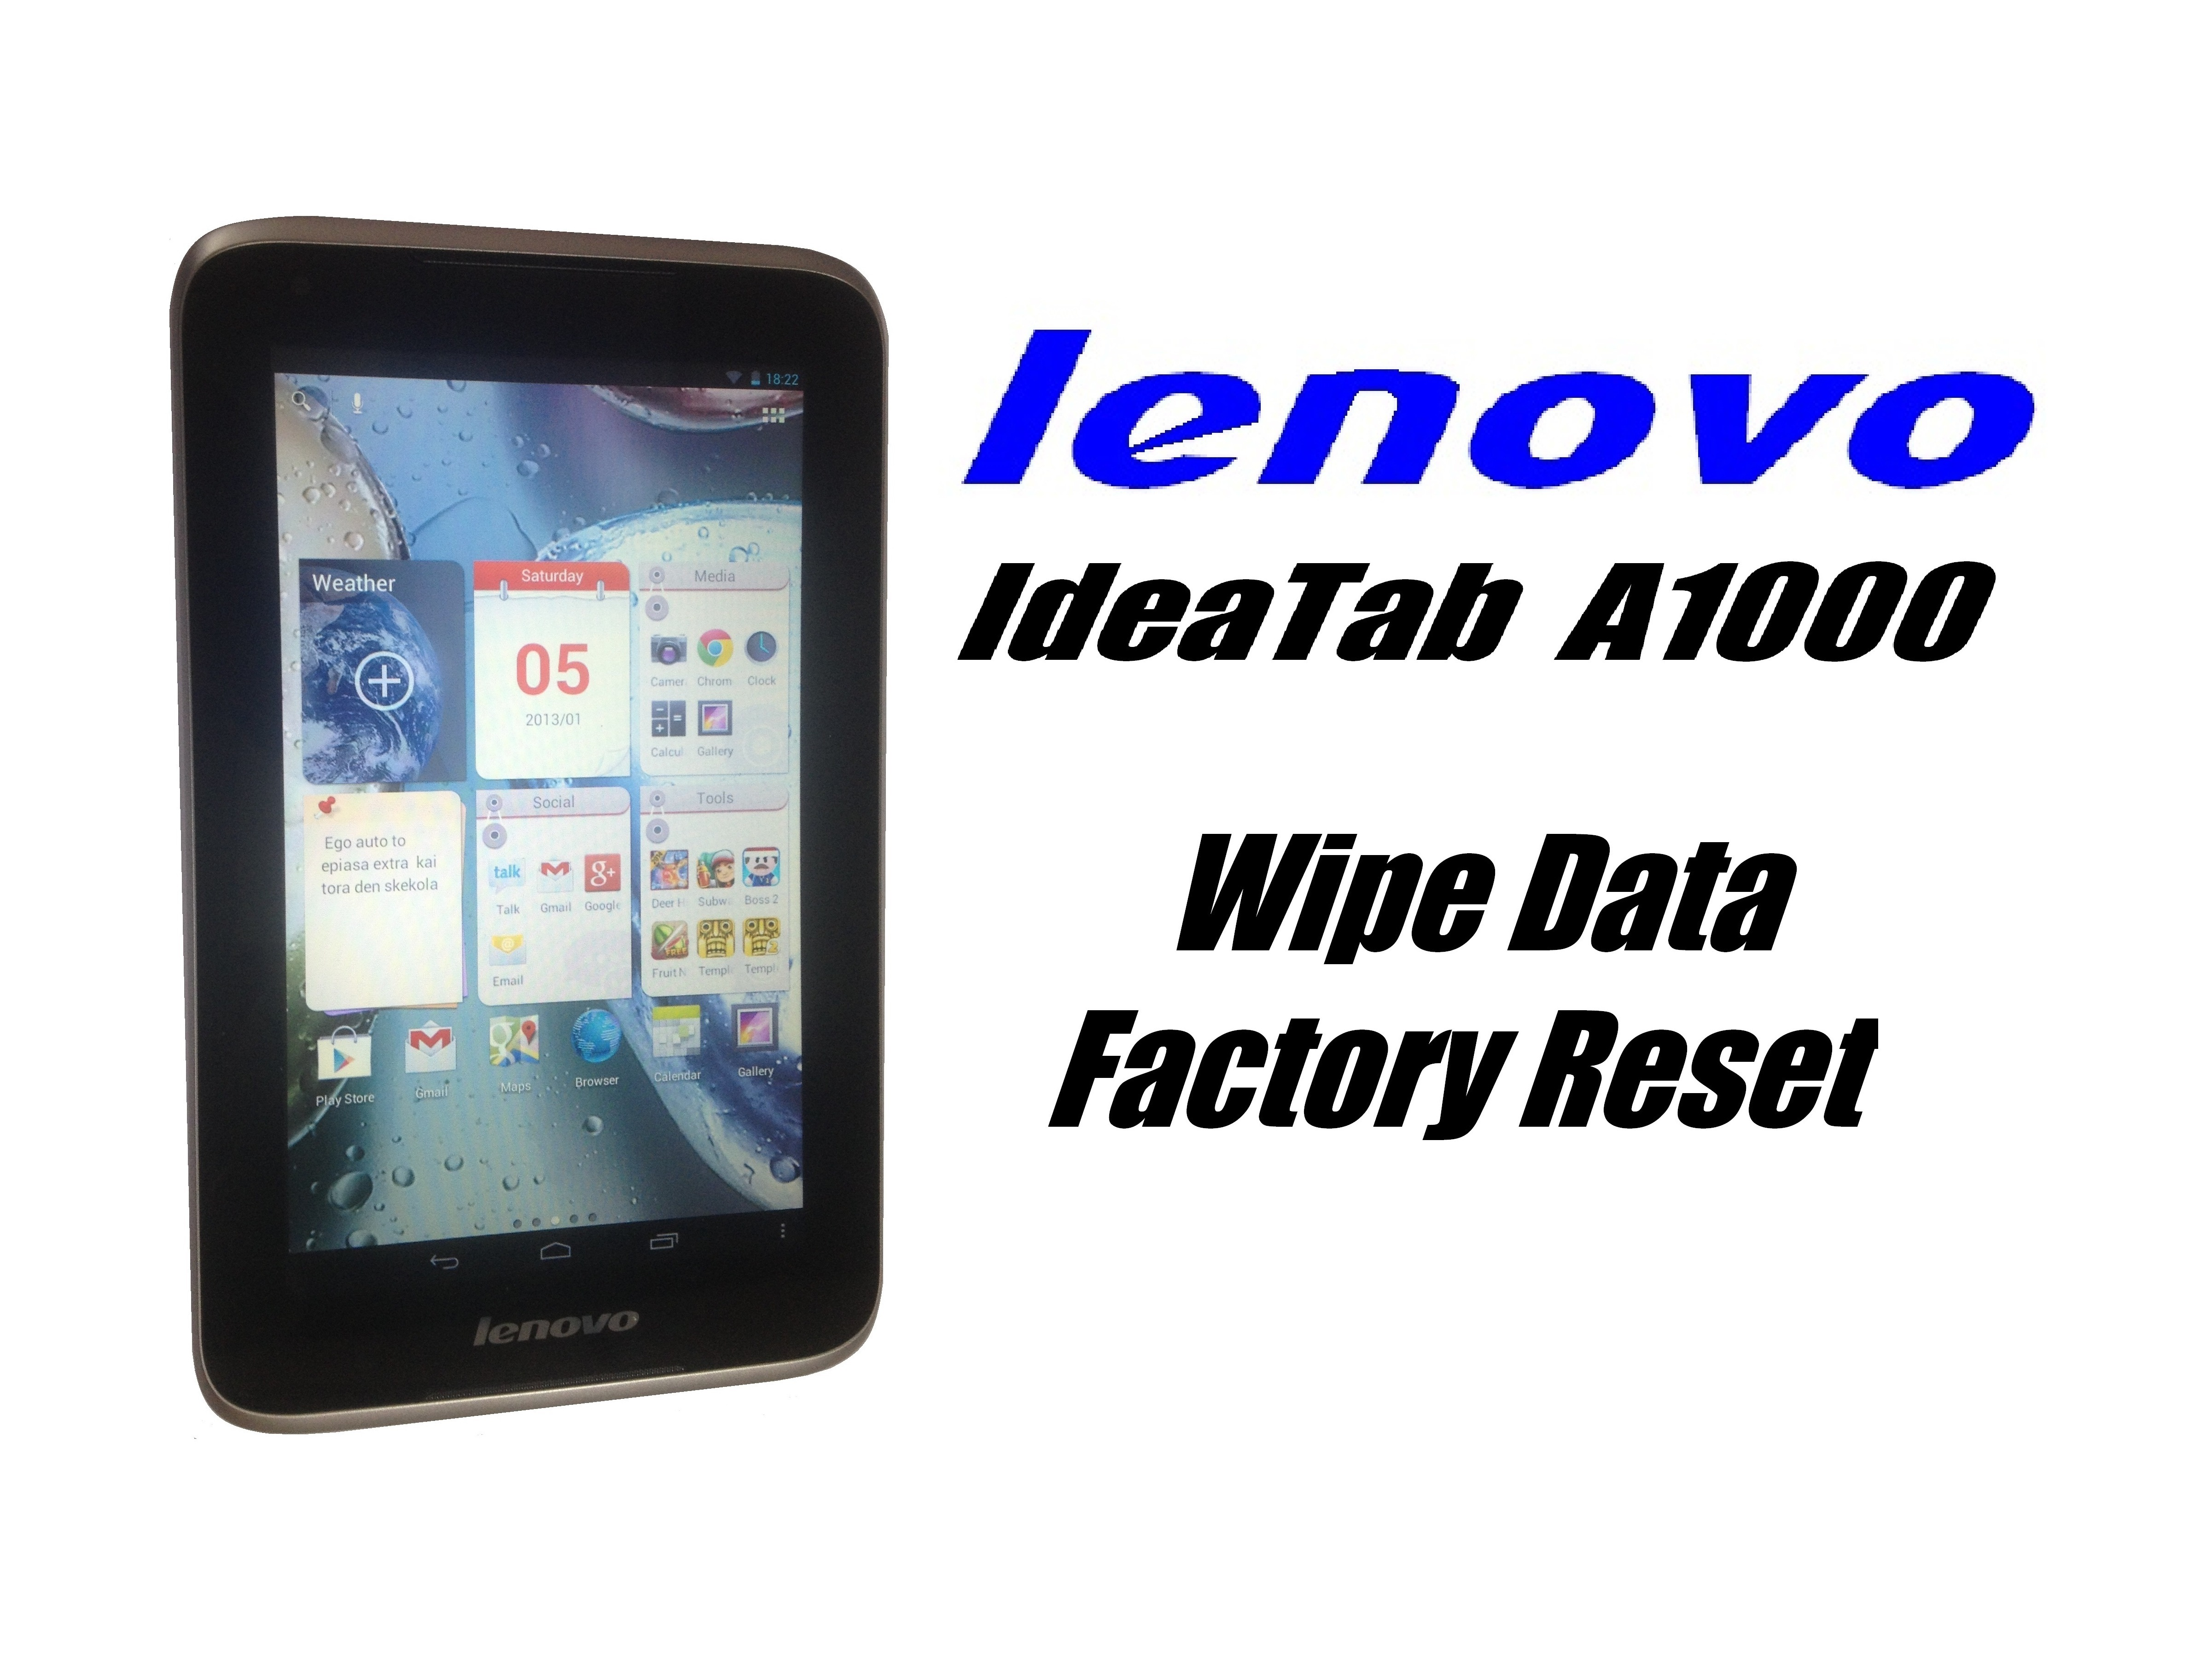 lenovo ideatab a1000 wipe data factory reset hard reset ifixit